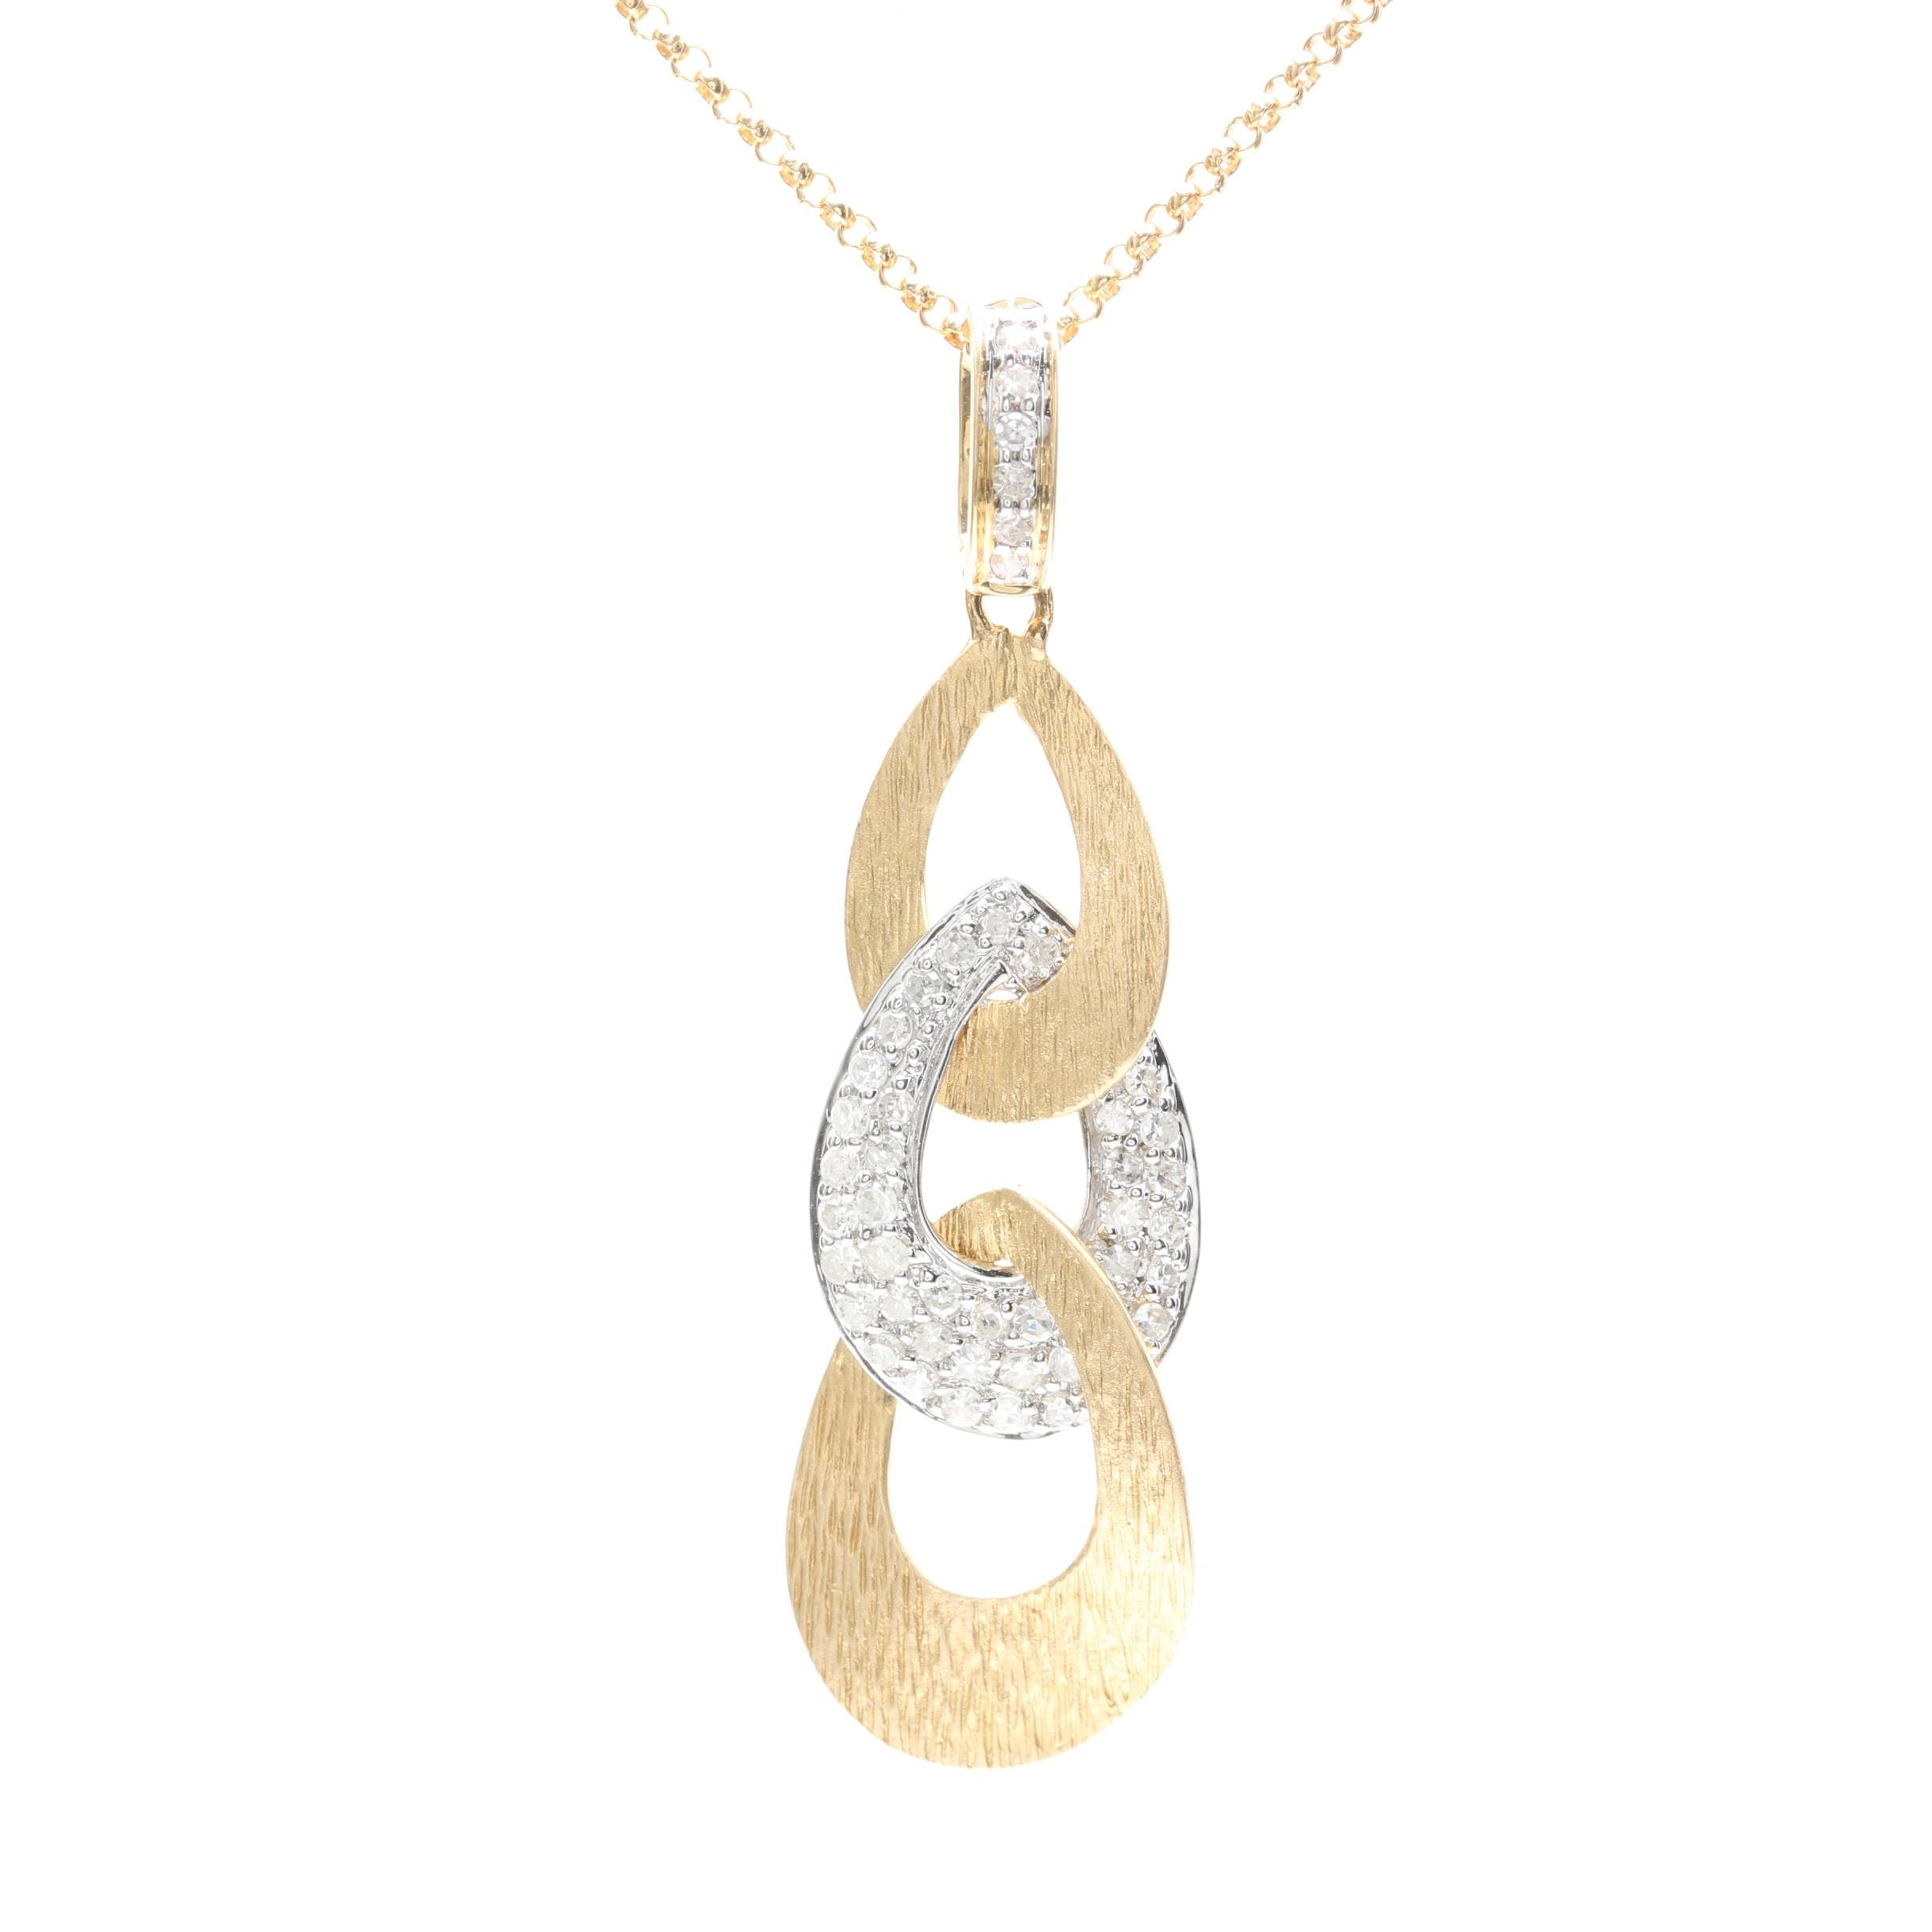 14K Yellow Gold Diamond Pendant Necklace With White Gold Accents : EBTH